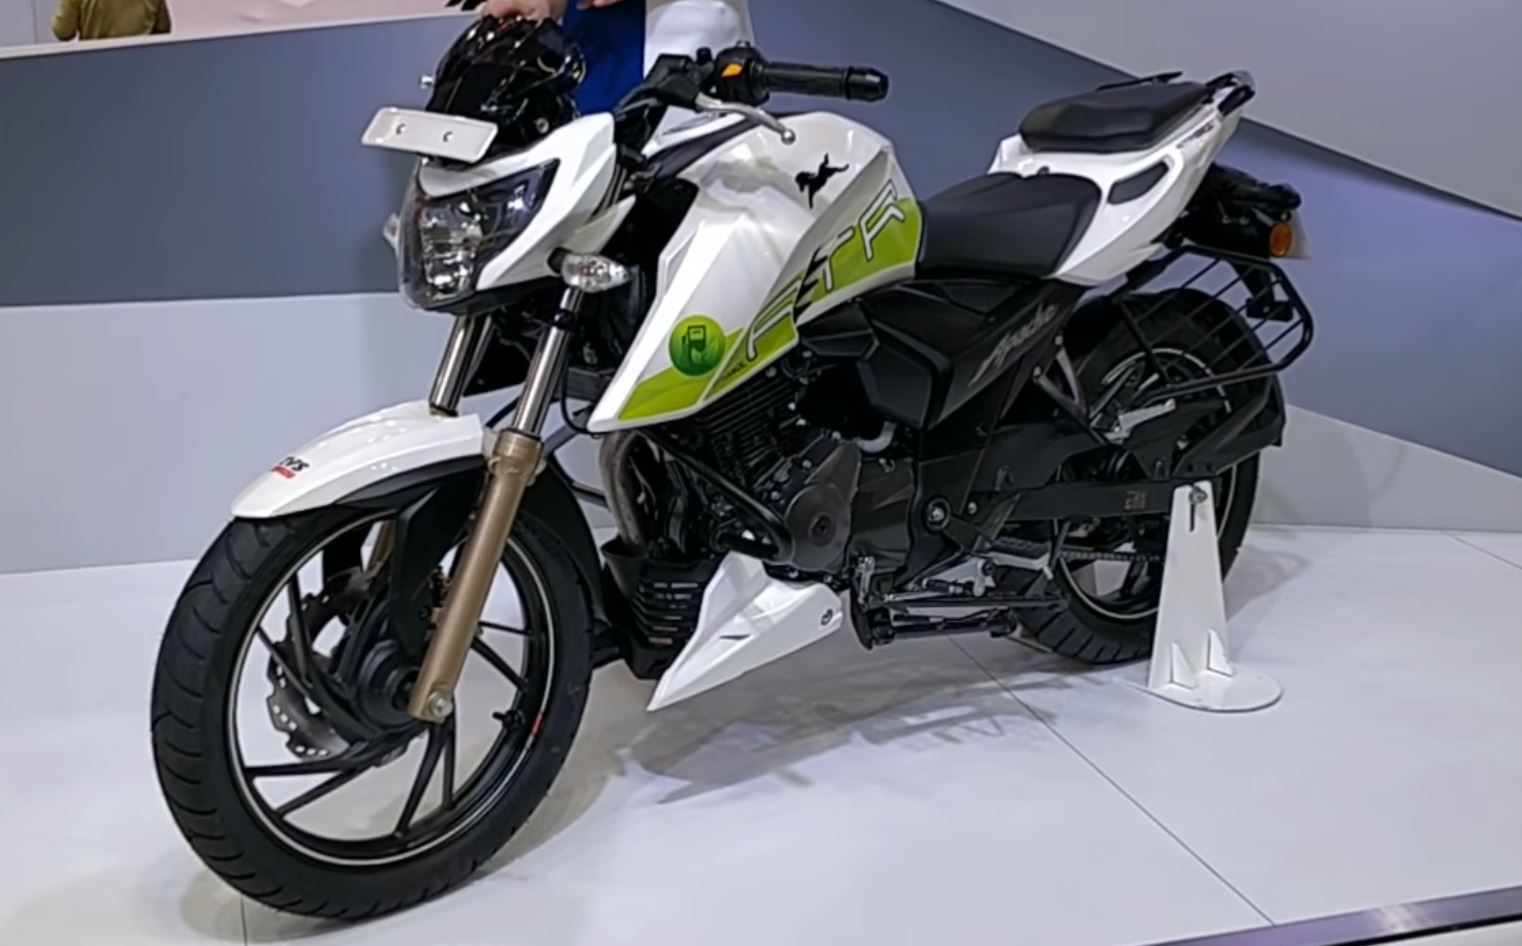 TVS's Ethanol bike priced at Rs 1.2 lakhs, top speed 129 kmph